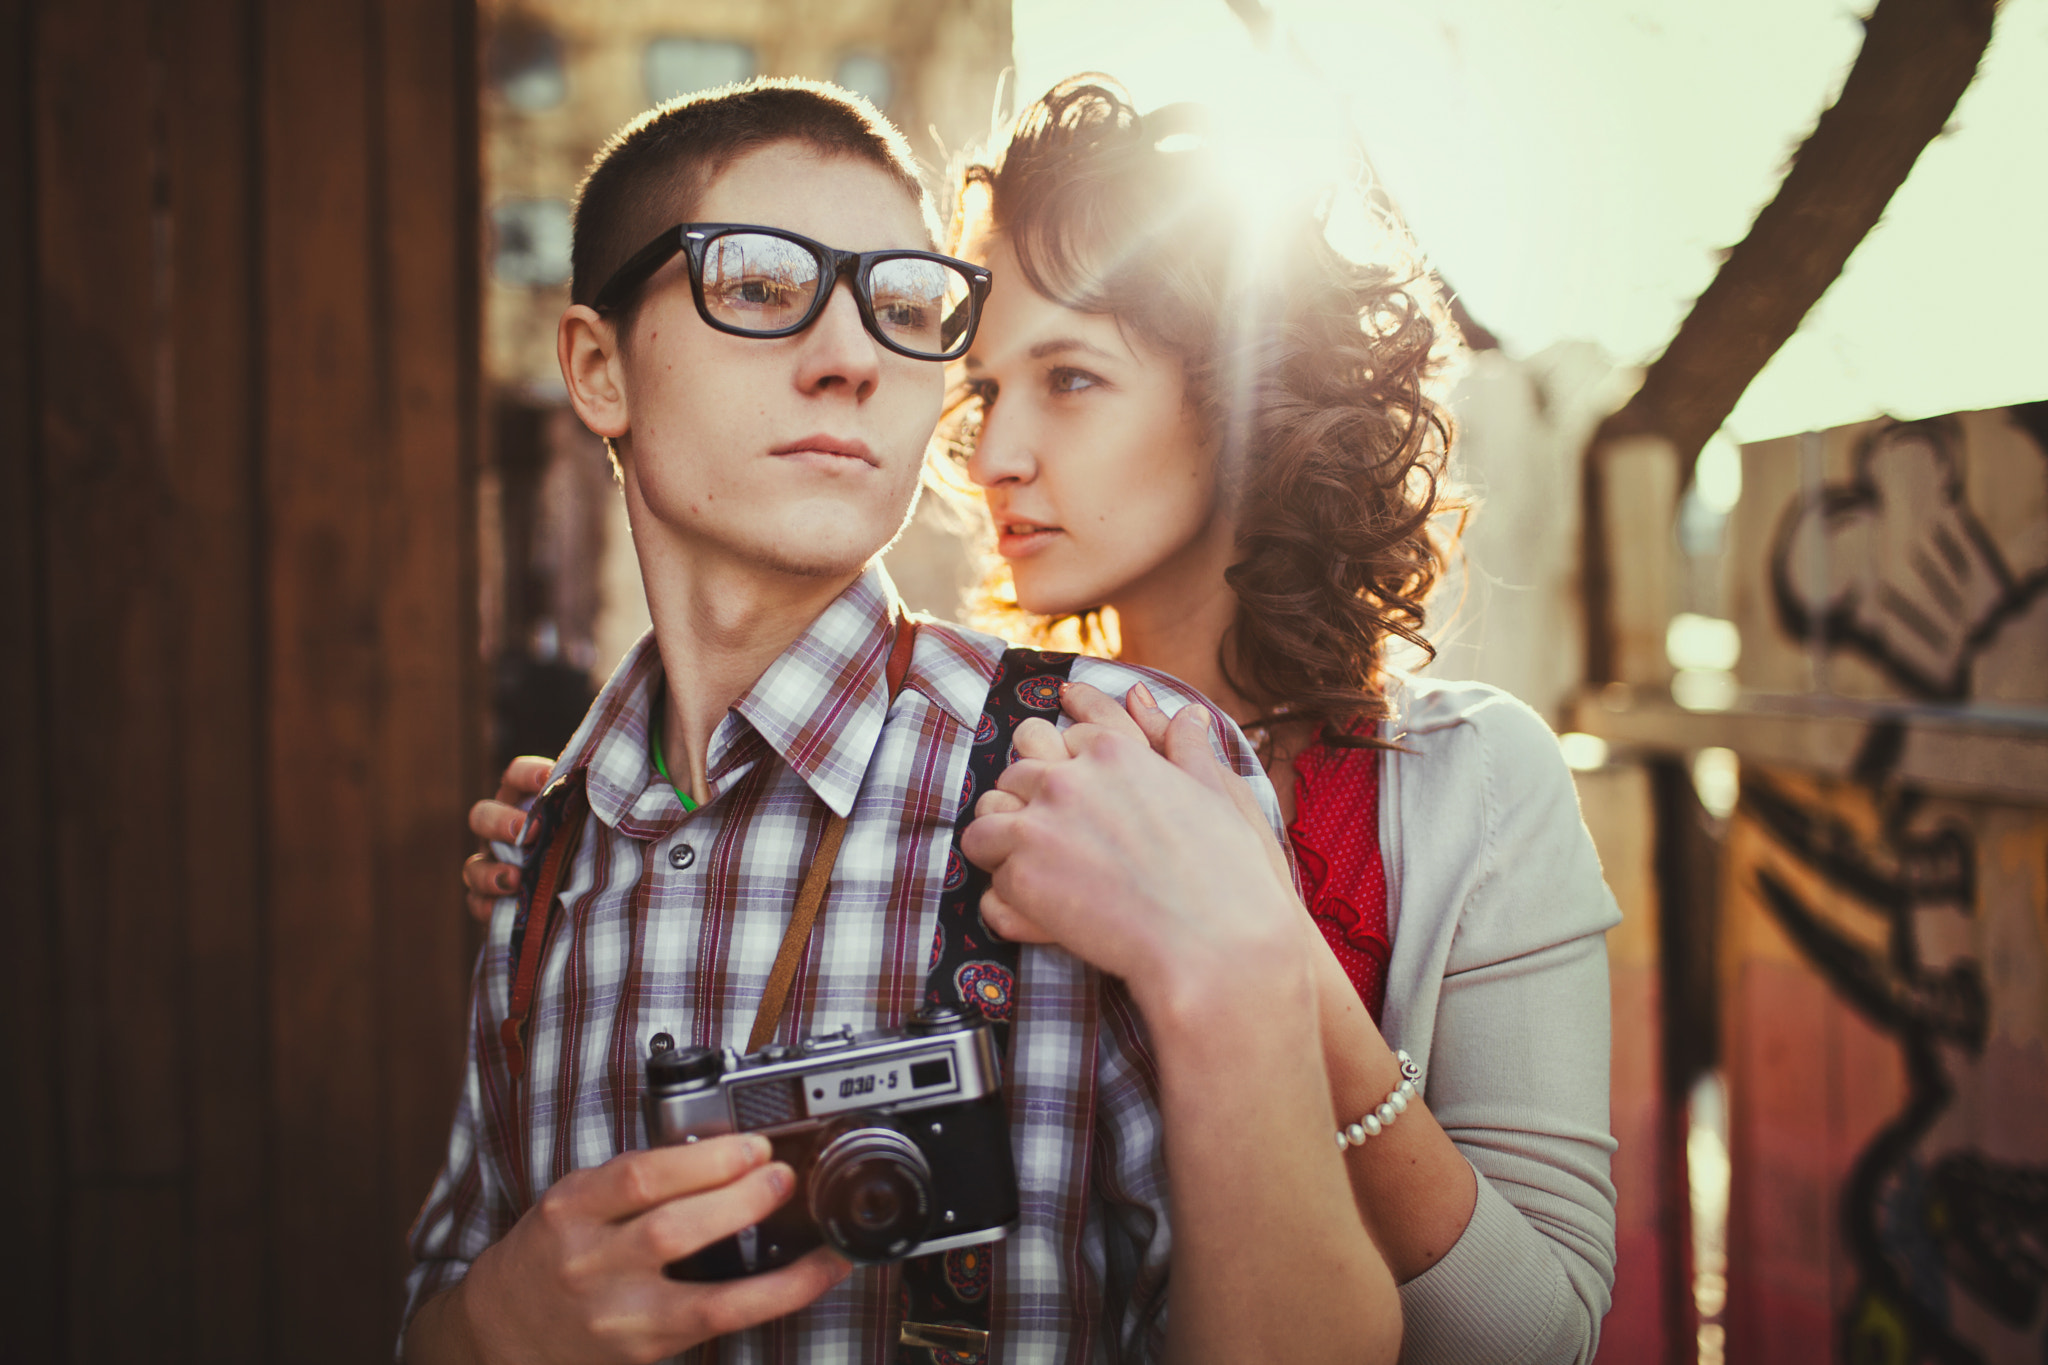 Photograph LOVE 1 by Pavel Lepeshev on 500px